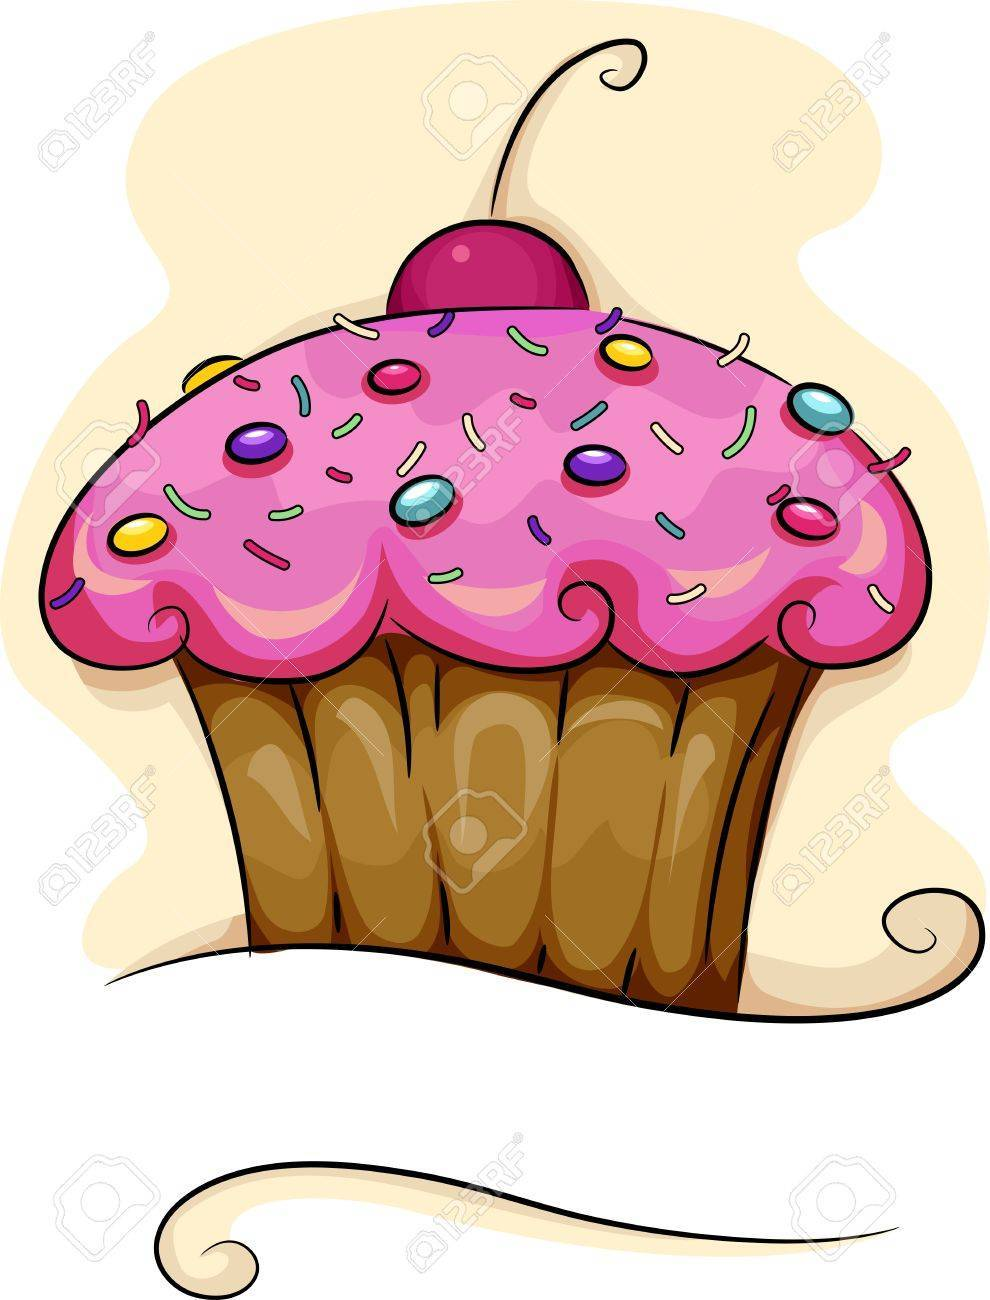 Cupcake with cherry on top clipart 2 » Clipart Portal.